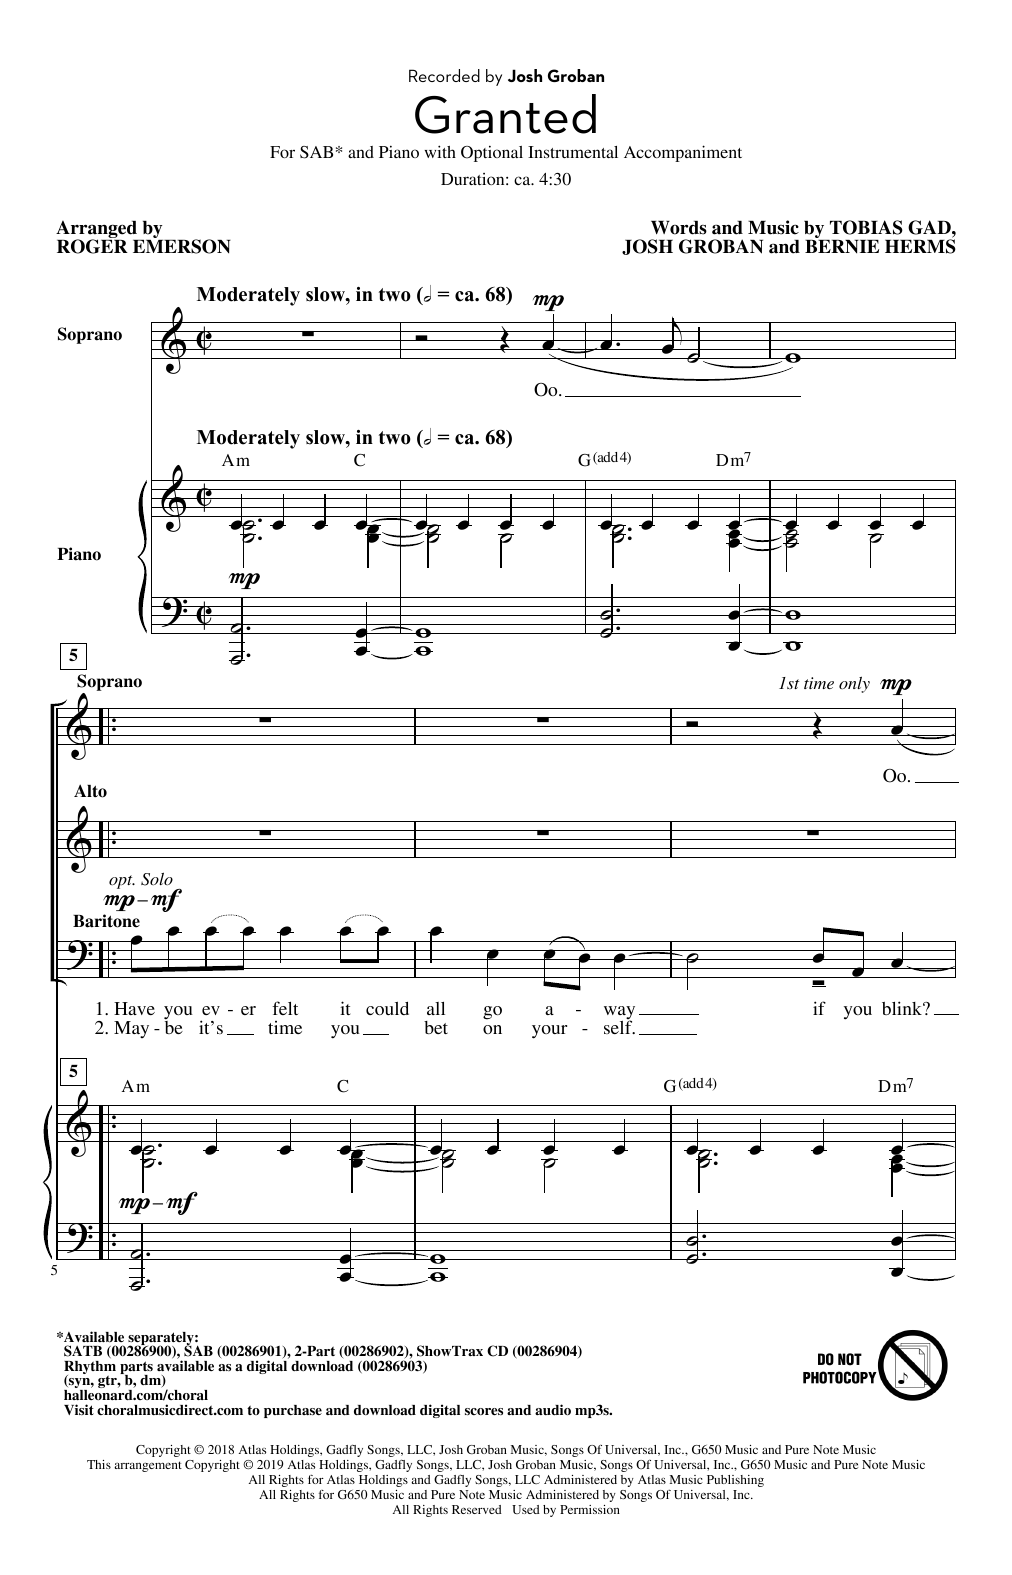 Josh Groban Granted (arr. Roger Emerson) sheet music notes and chords